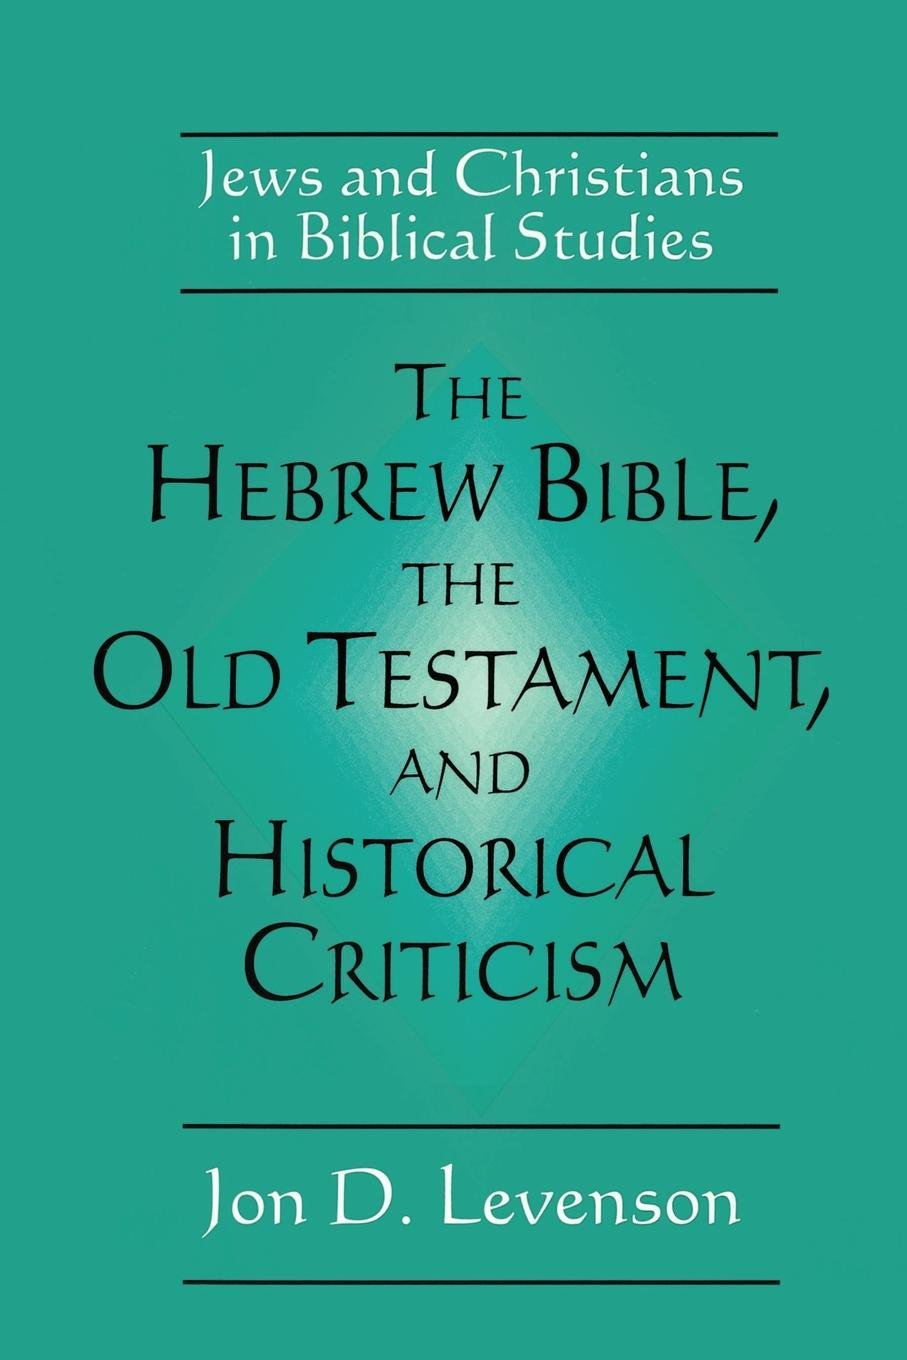 The Hebrew Bible, the Old Testament, and Historical Criticism: Jews and Christians  in Biblical Studies: Amazon.co.uk: Jon Douglas Levenson: 9780664254070: ...